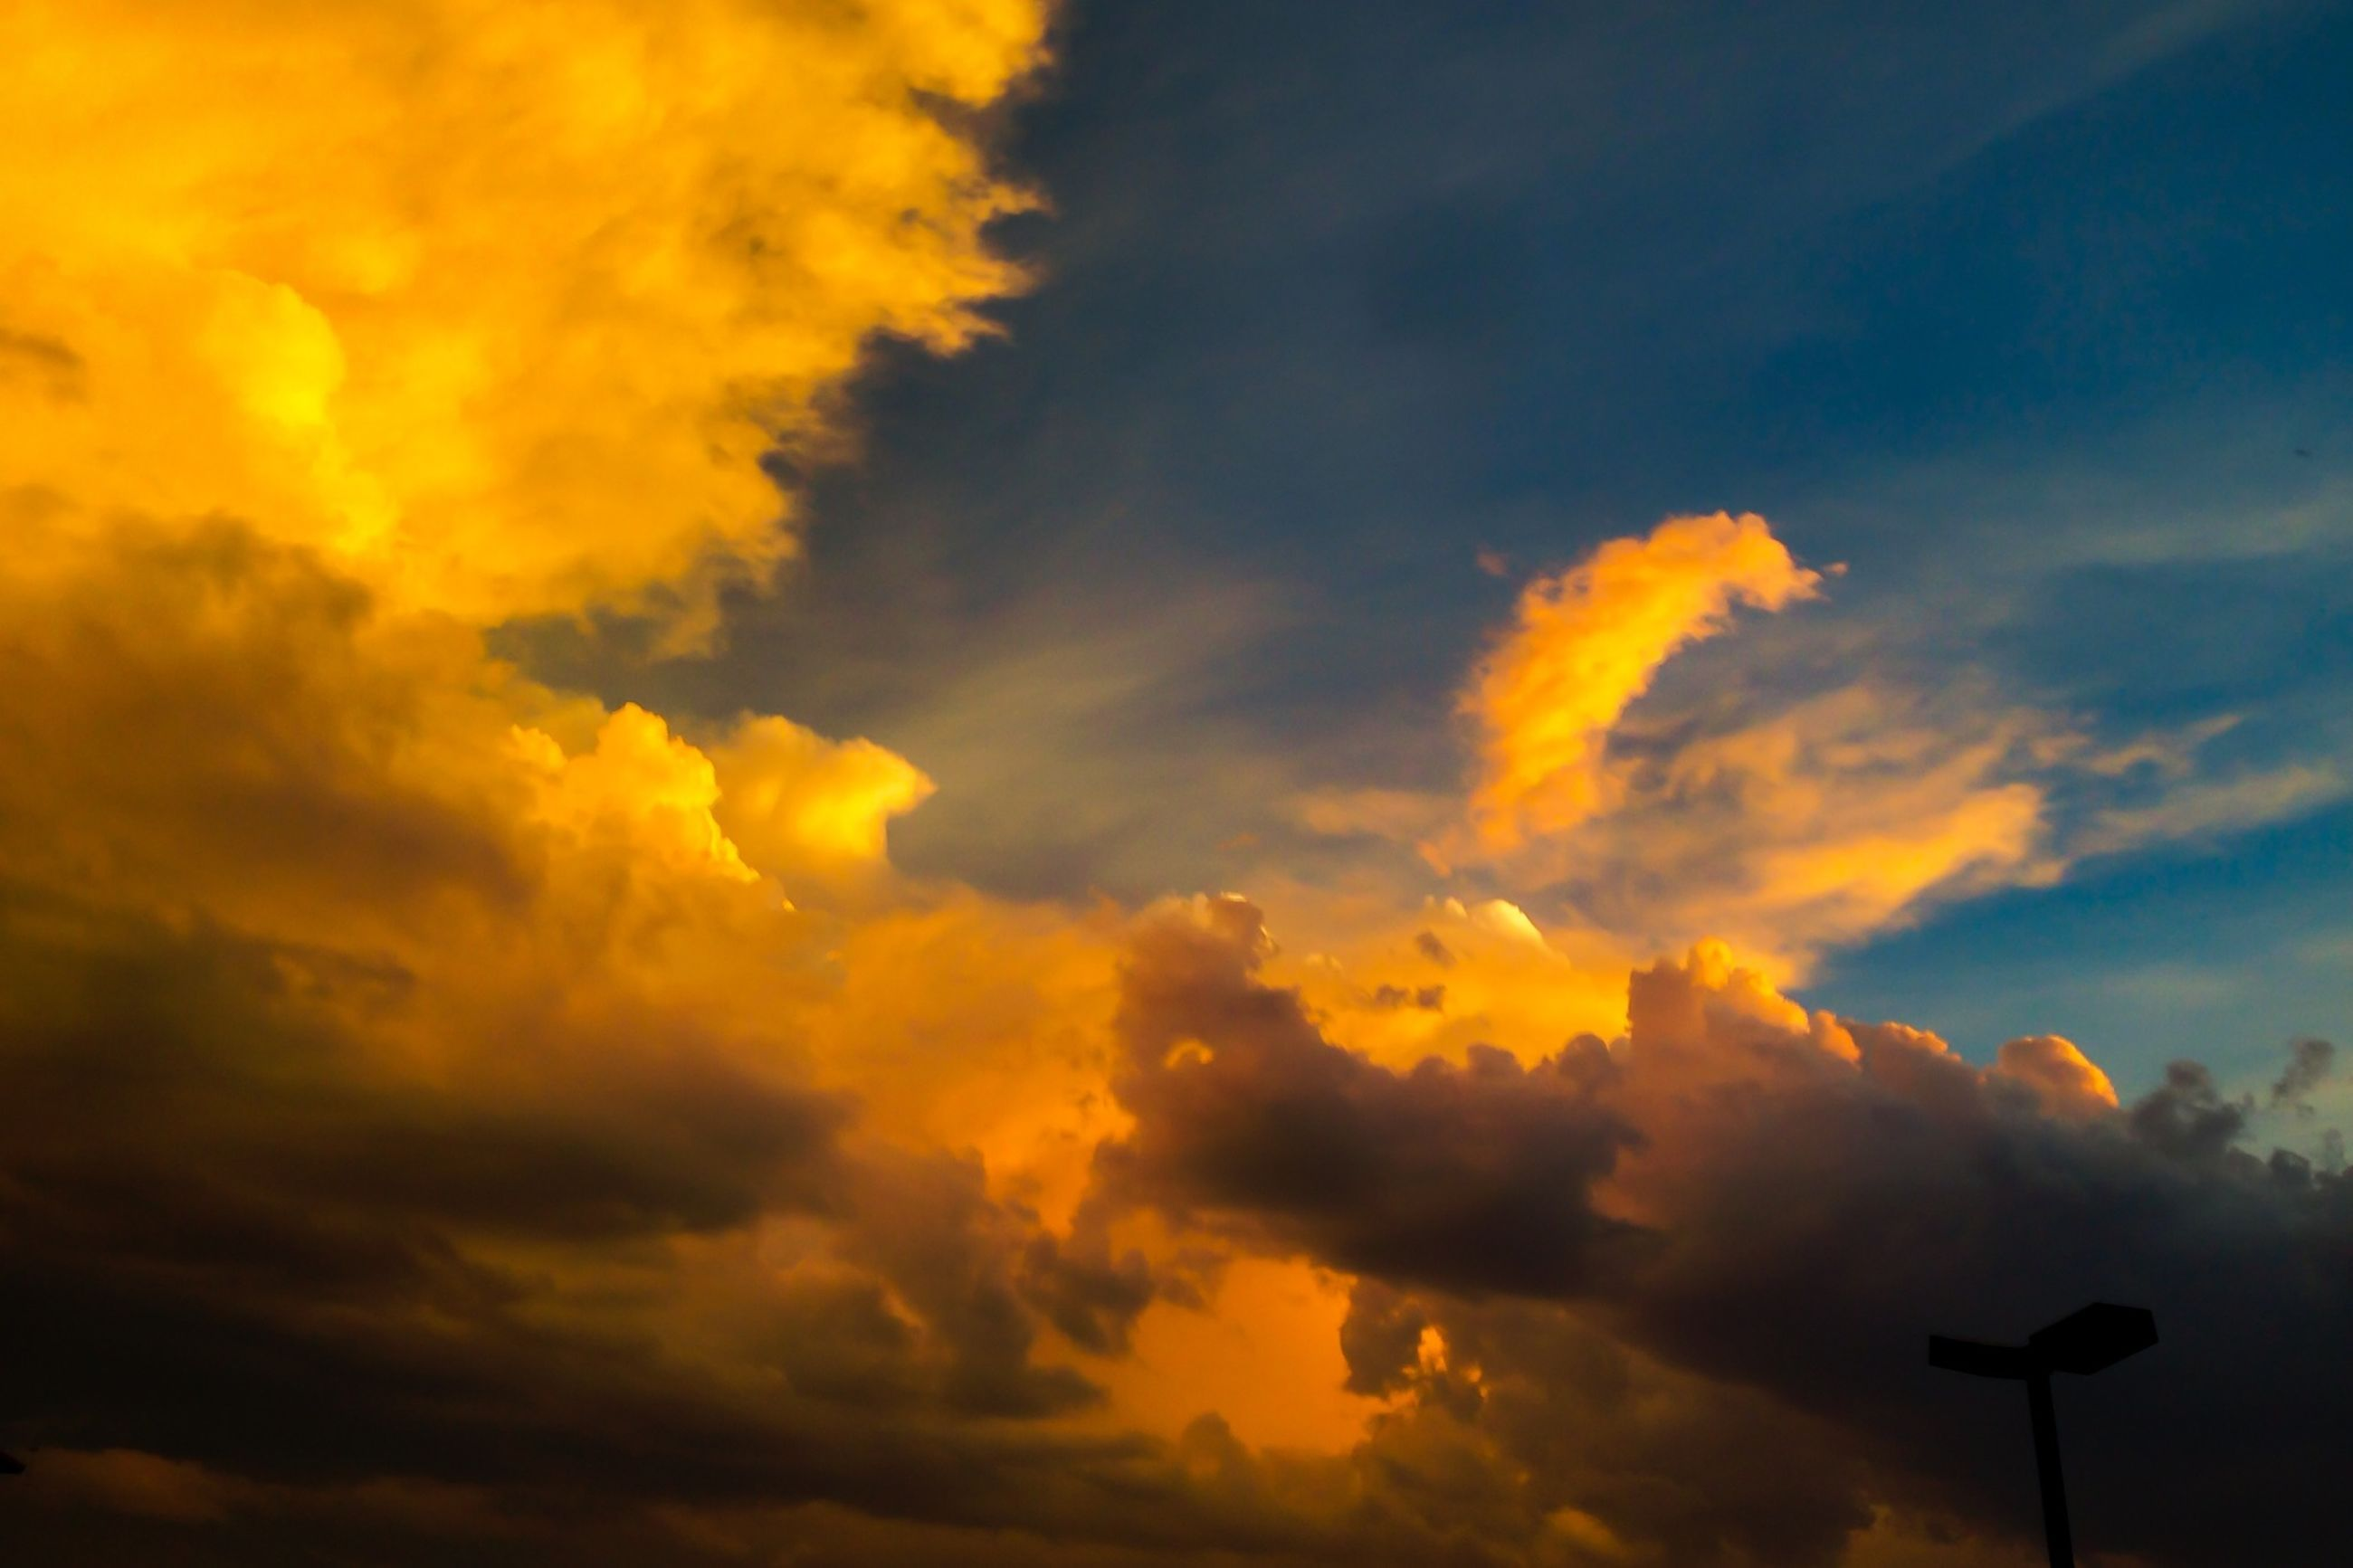 sunset, sky, low angle view, cloud - sky, beauty in nature, orange color, scenics, cloudy, dramatic sky, tranquility, cloudscape, nature, tranquil scene, cloud, sky only, idyllic, silhouette, weather, majestic, moody sky